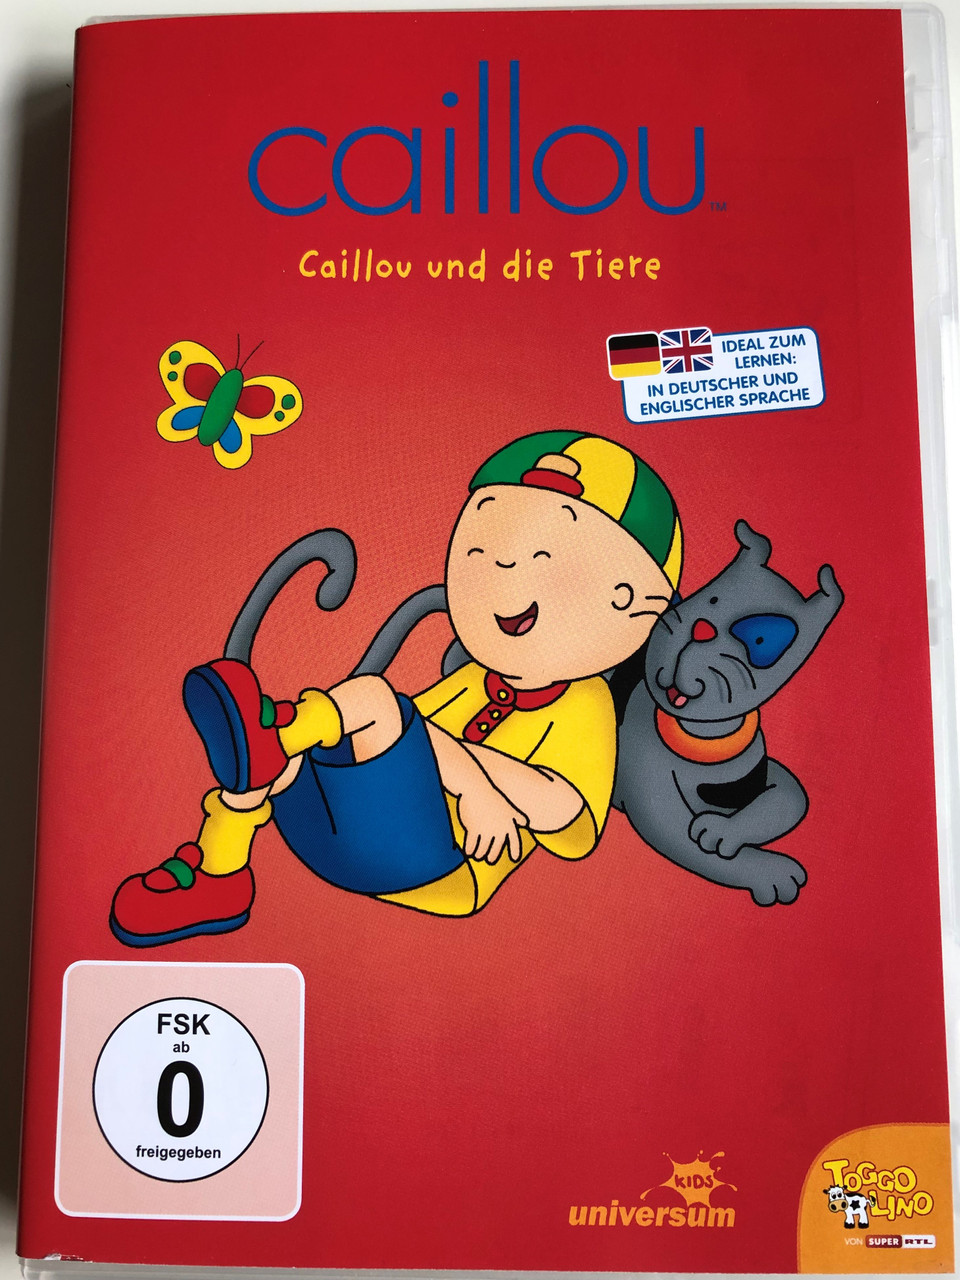 Caillou DVD 2000 Caillou und die Tiere / Directed by Jean ... Caillou Family Collection 9 13